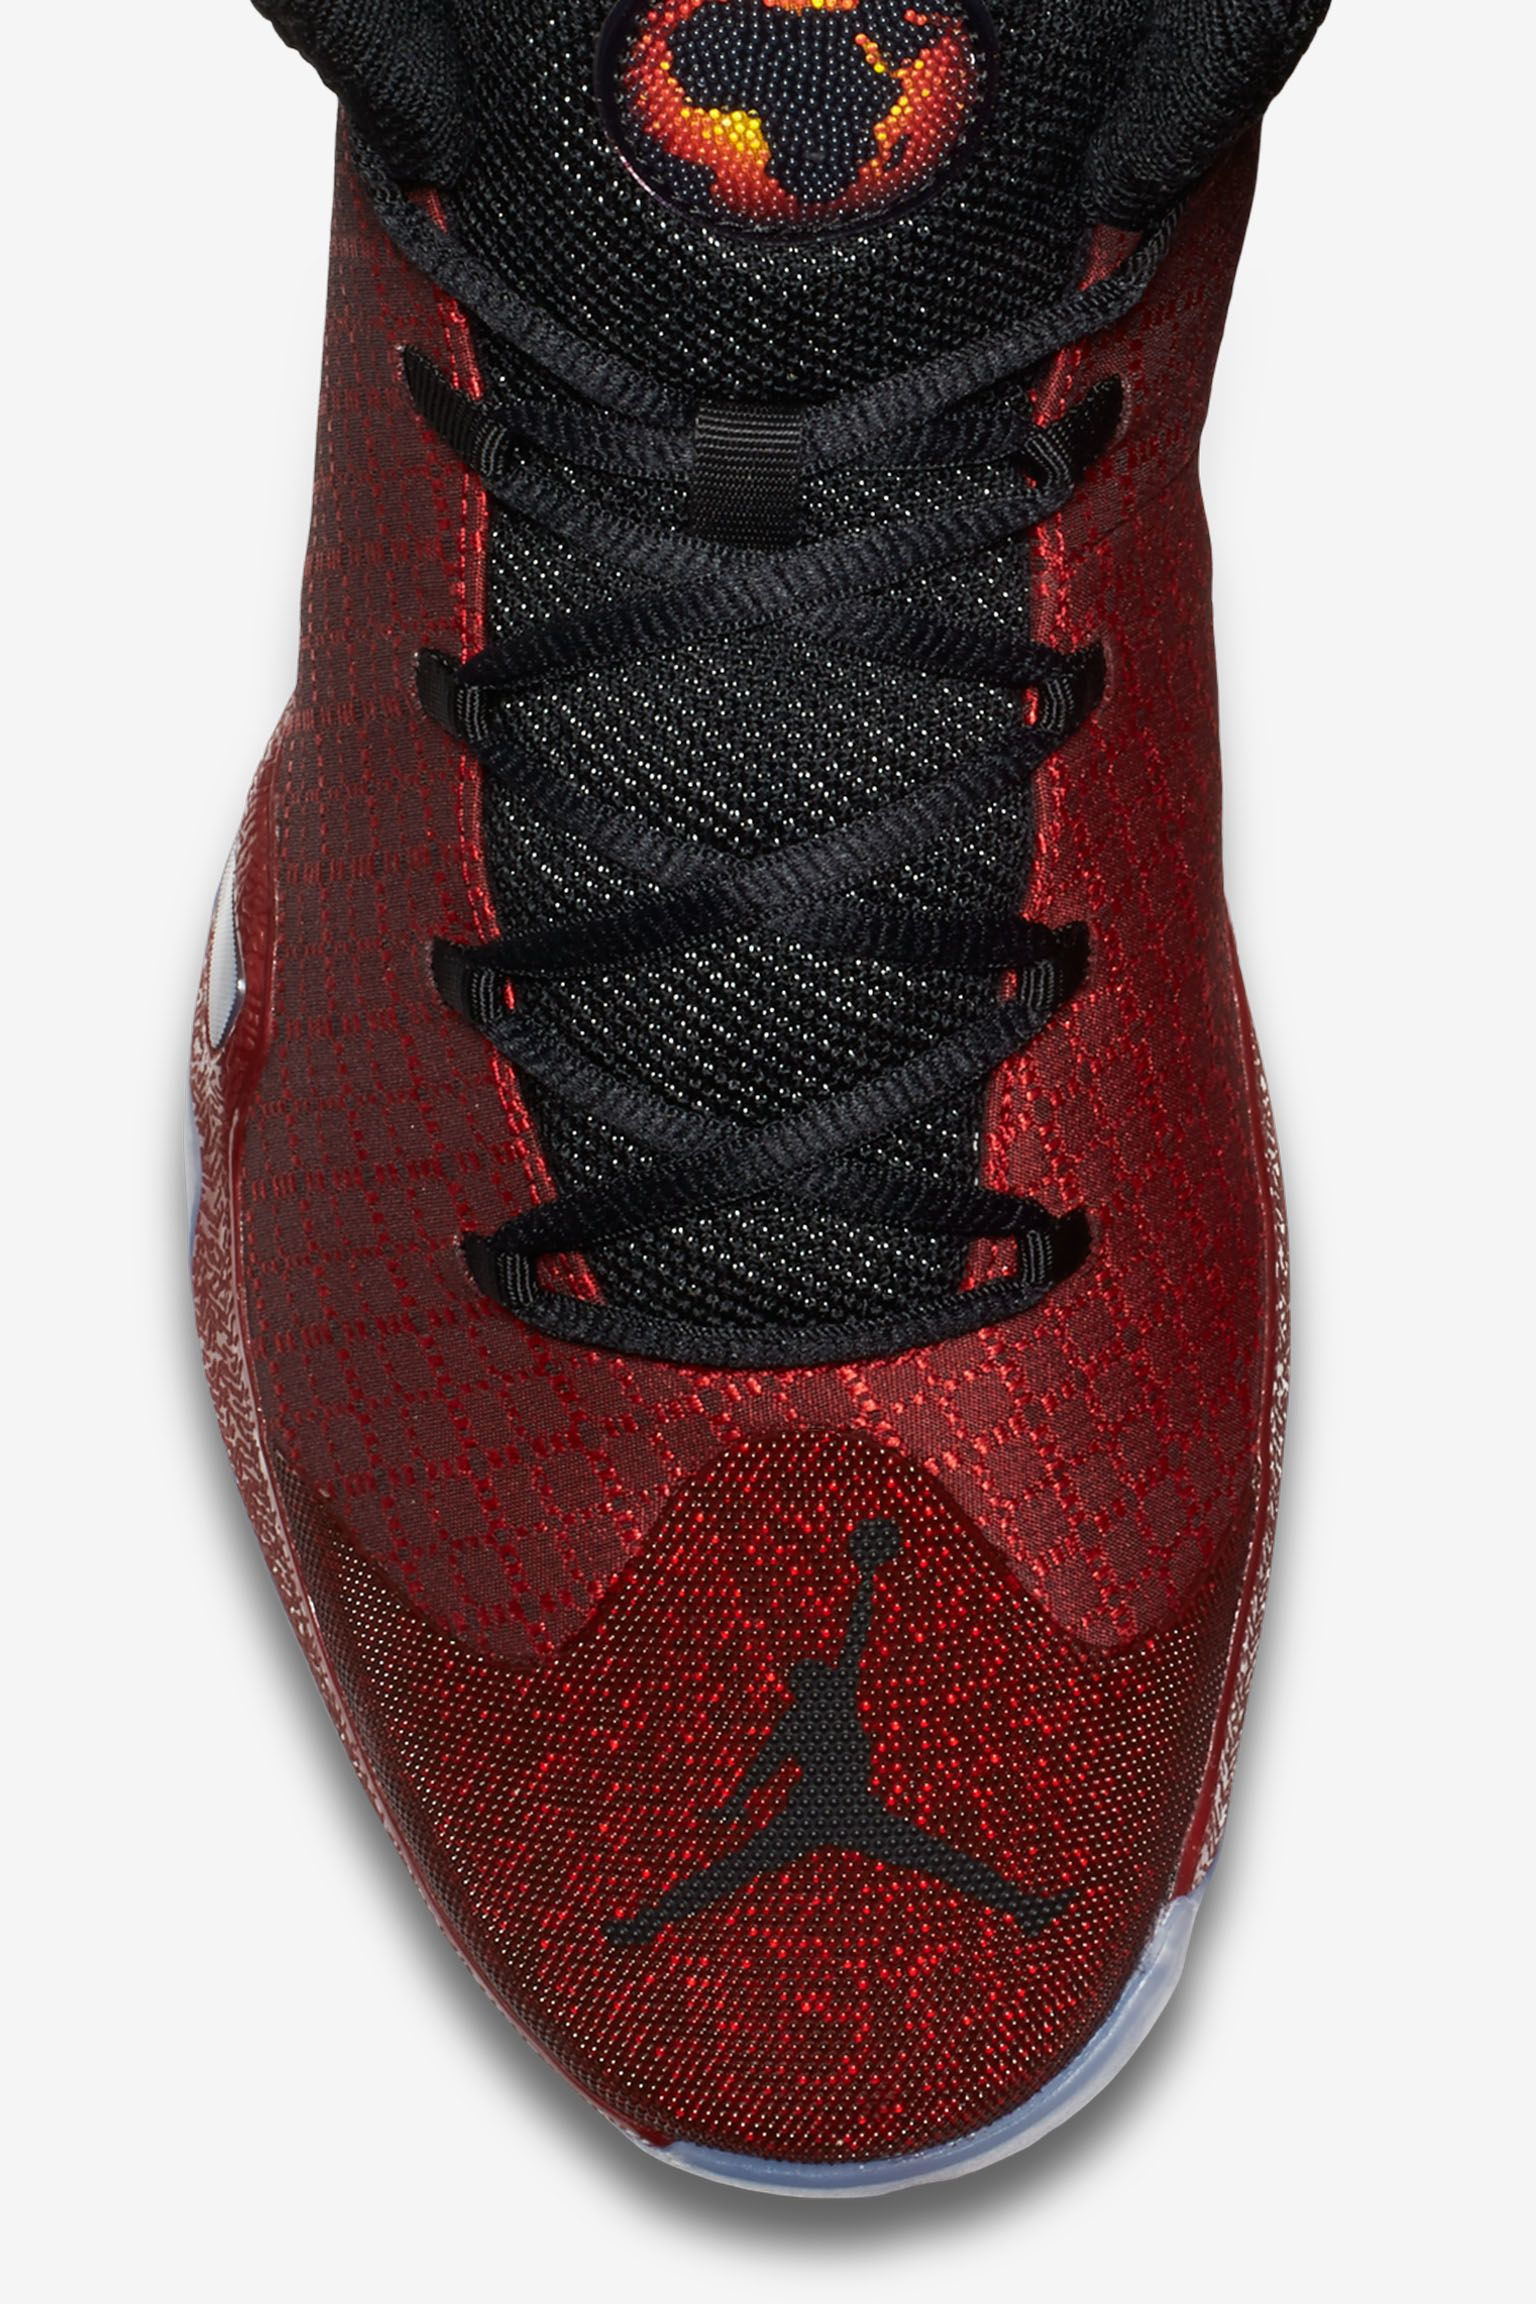 Air Jordan 30 'Gym Red' Release Date